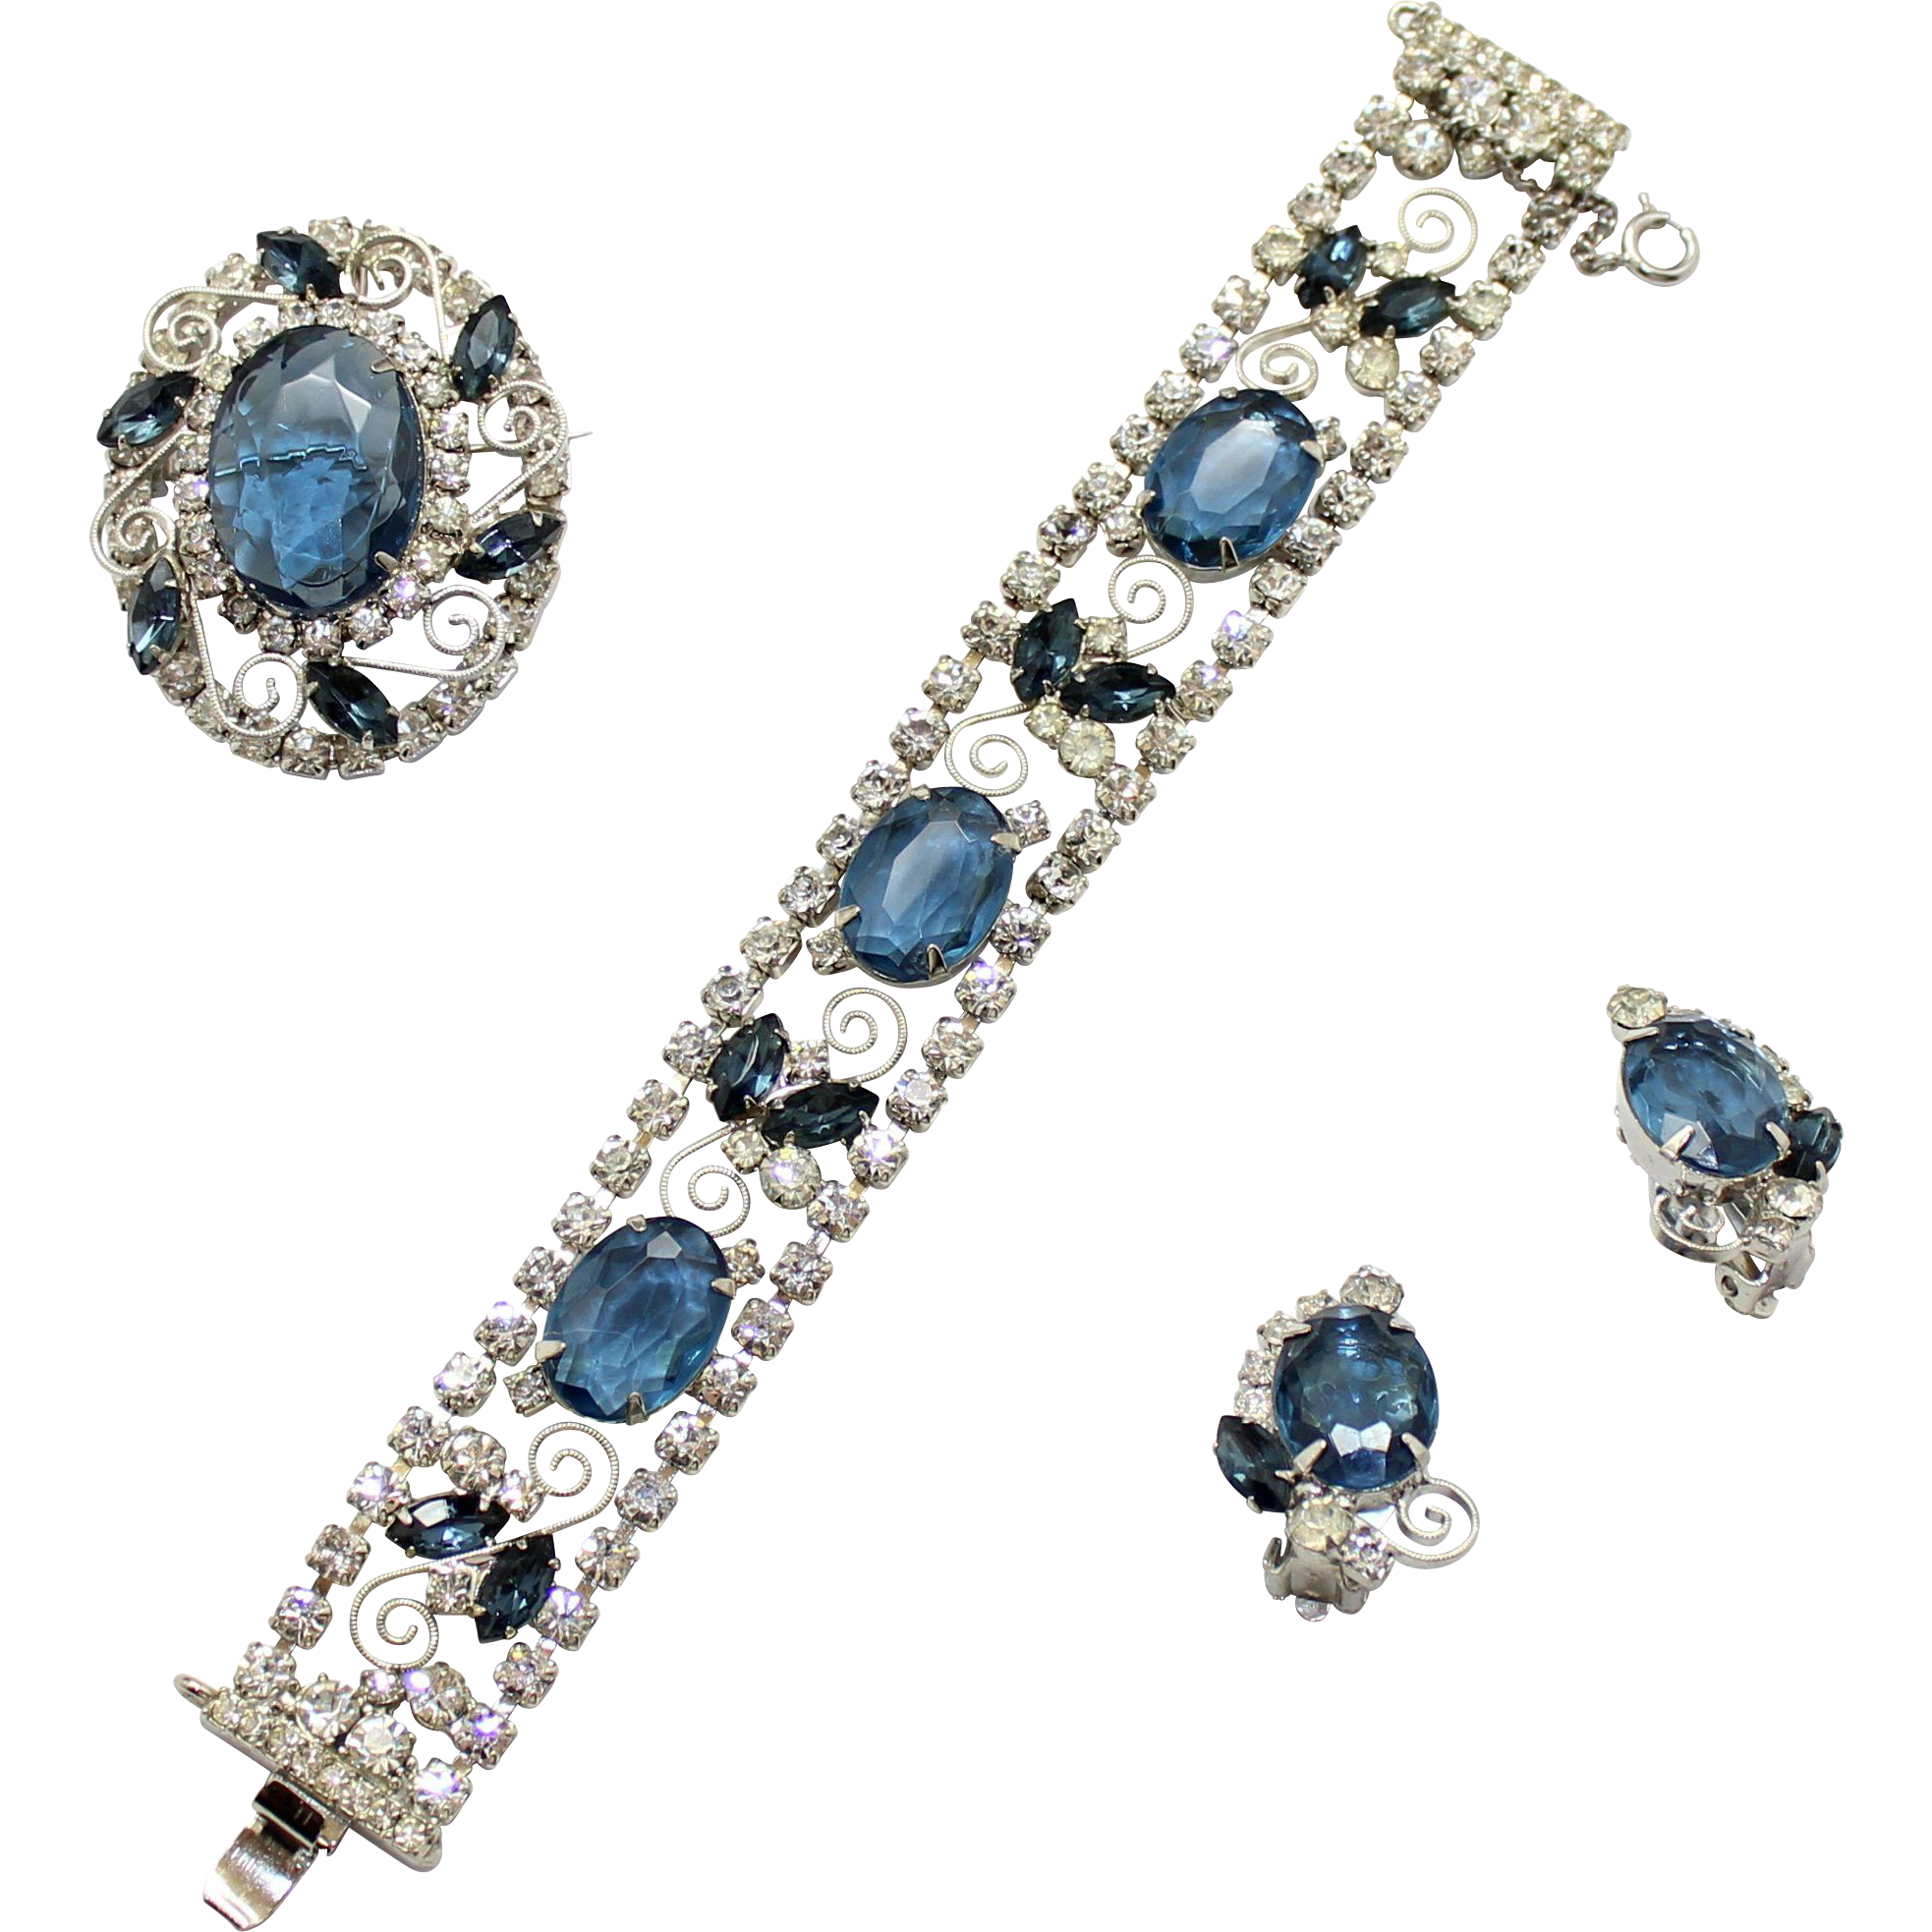 Vintage Juliana (D and E) Blue and Clear Rhinestone and Metal Scroll Work Bracelet, Brooch / Pendant and Earrings Parure